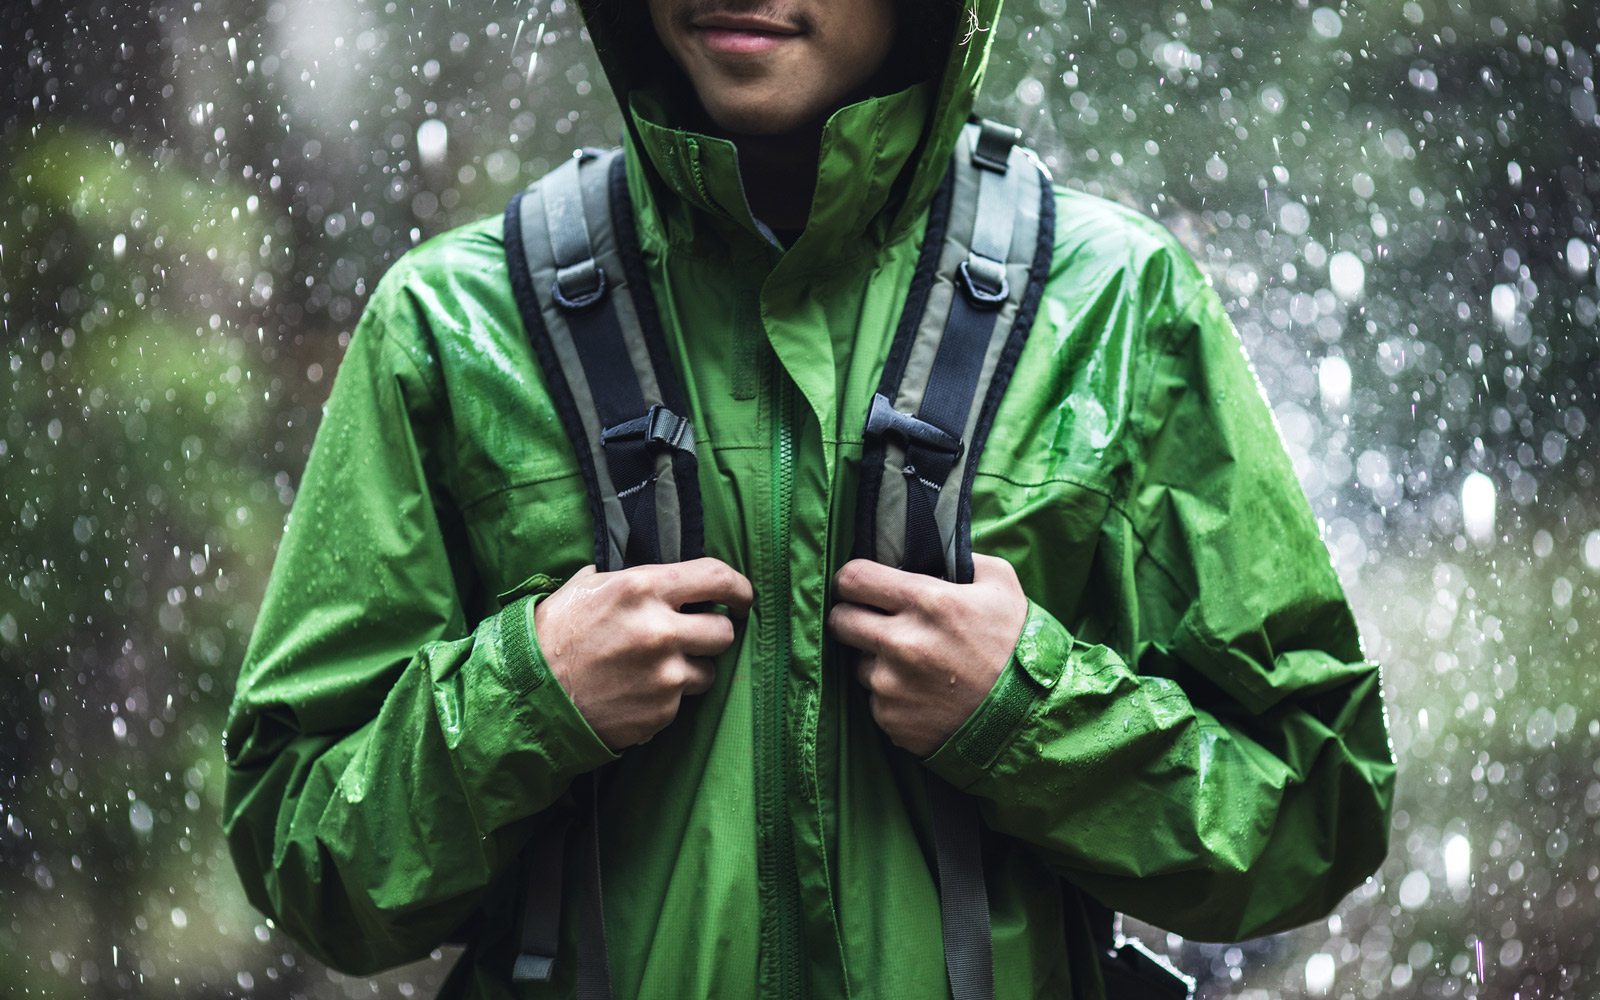 The Best Ways to Waterproof Your Travel Gear